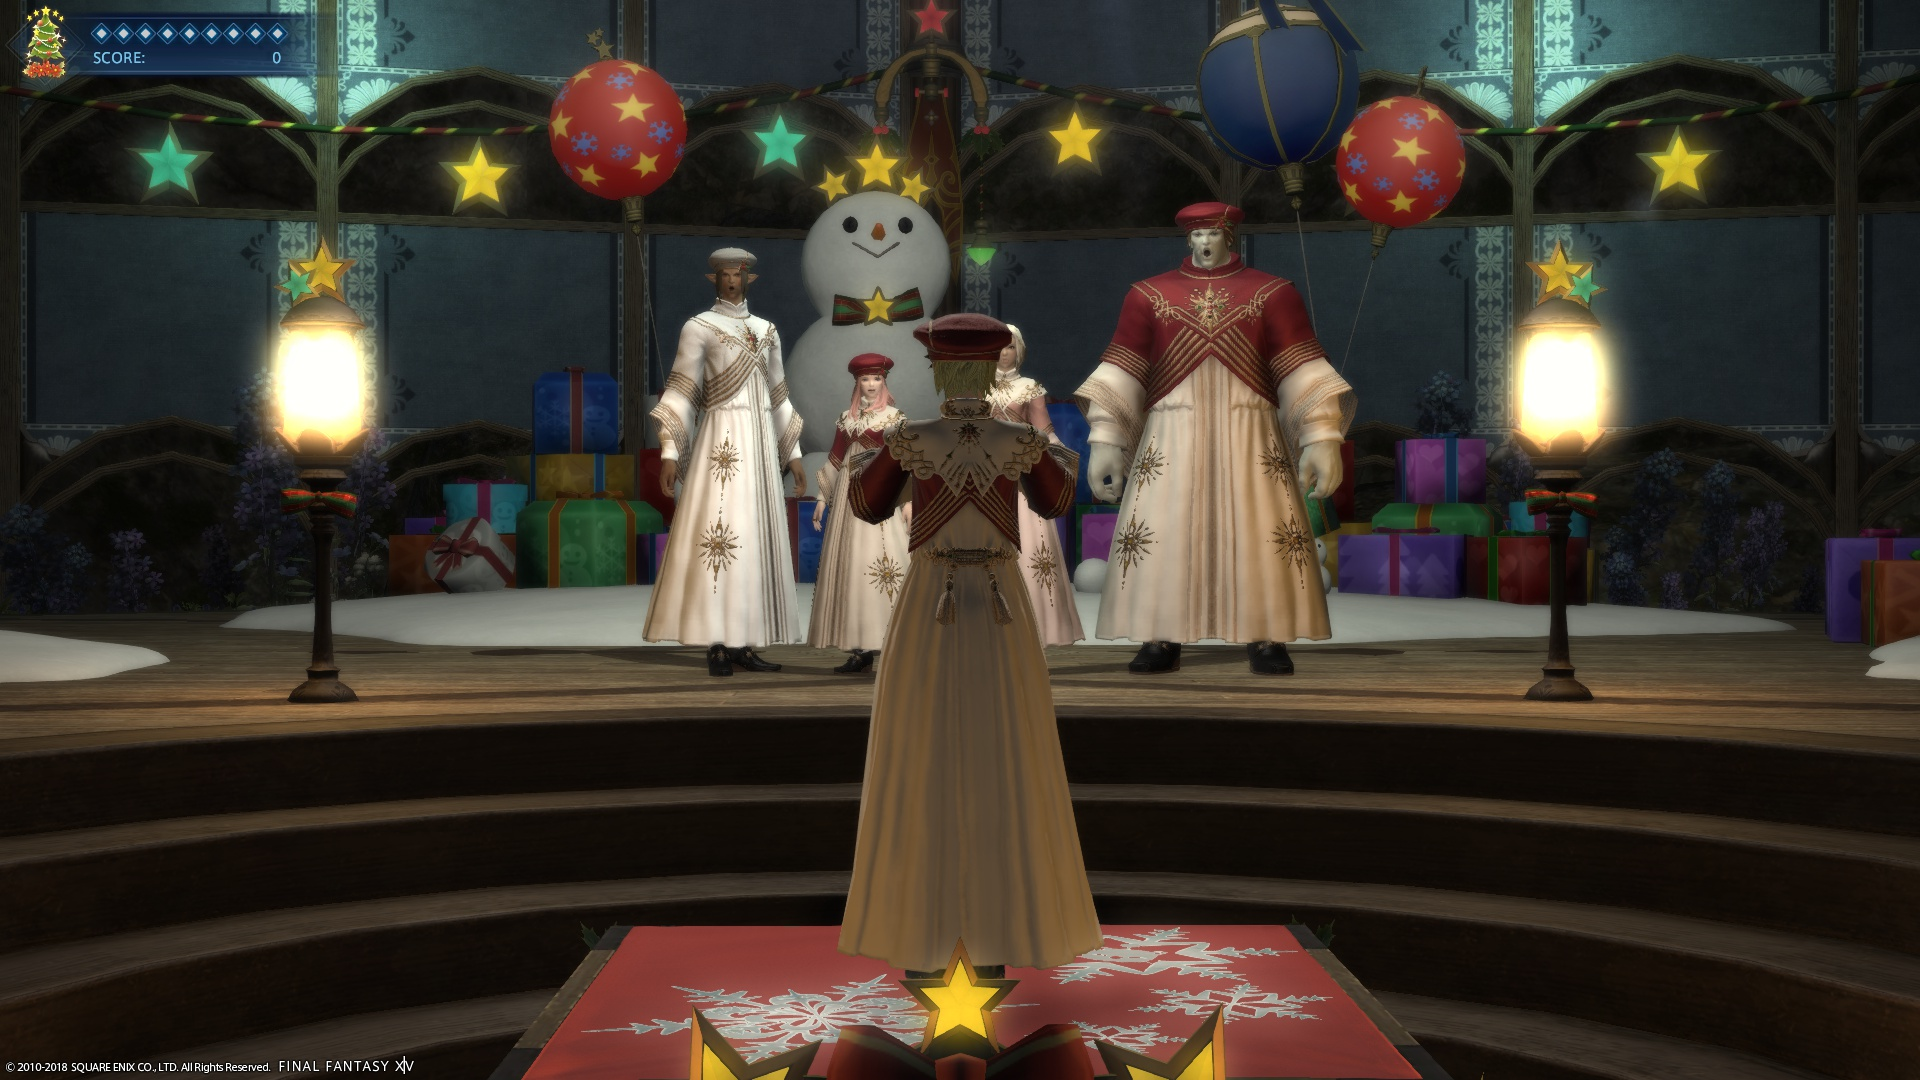 Patricia, a White Mage, is holding a wand ready to conduct the carol.